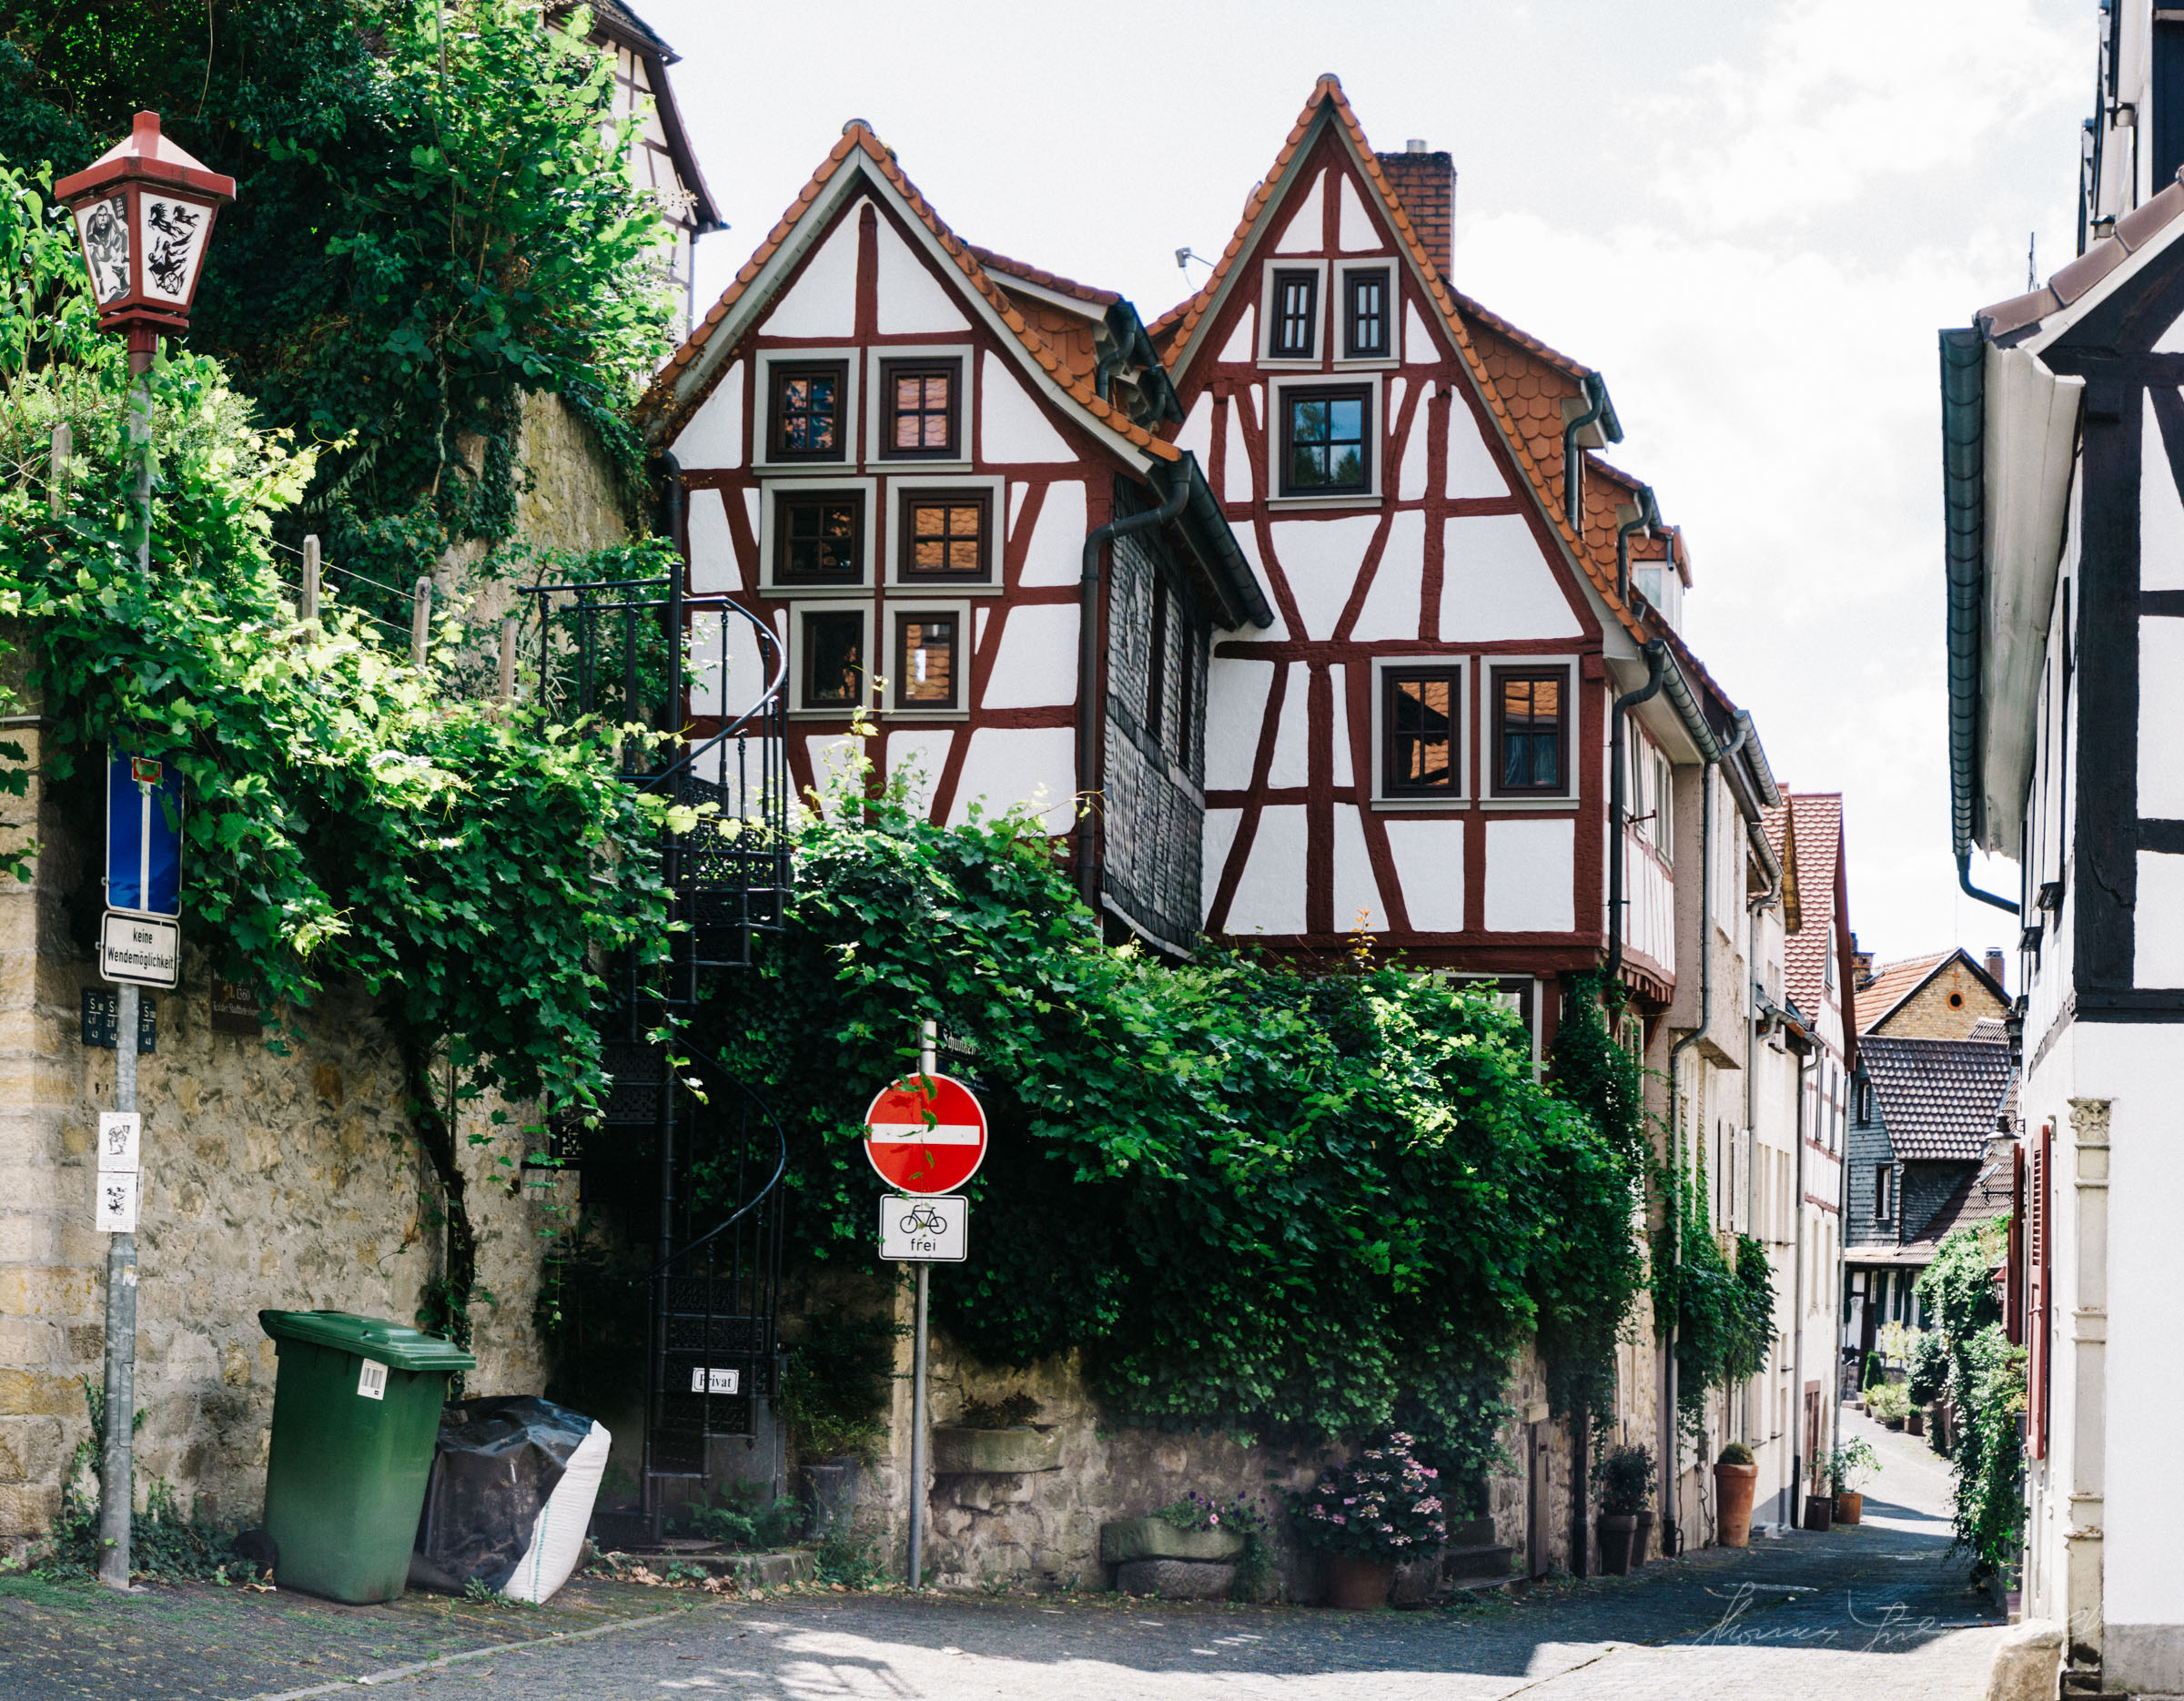 Ornate buildings and an old street, Heppenheim, Germany